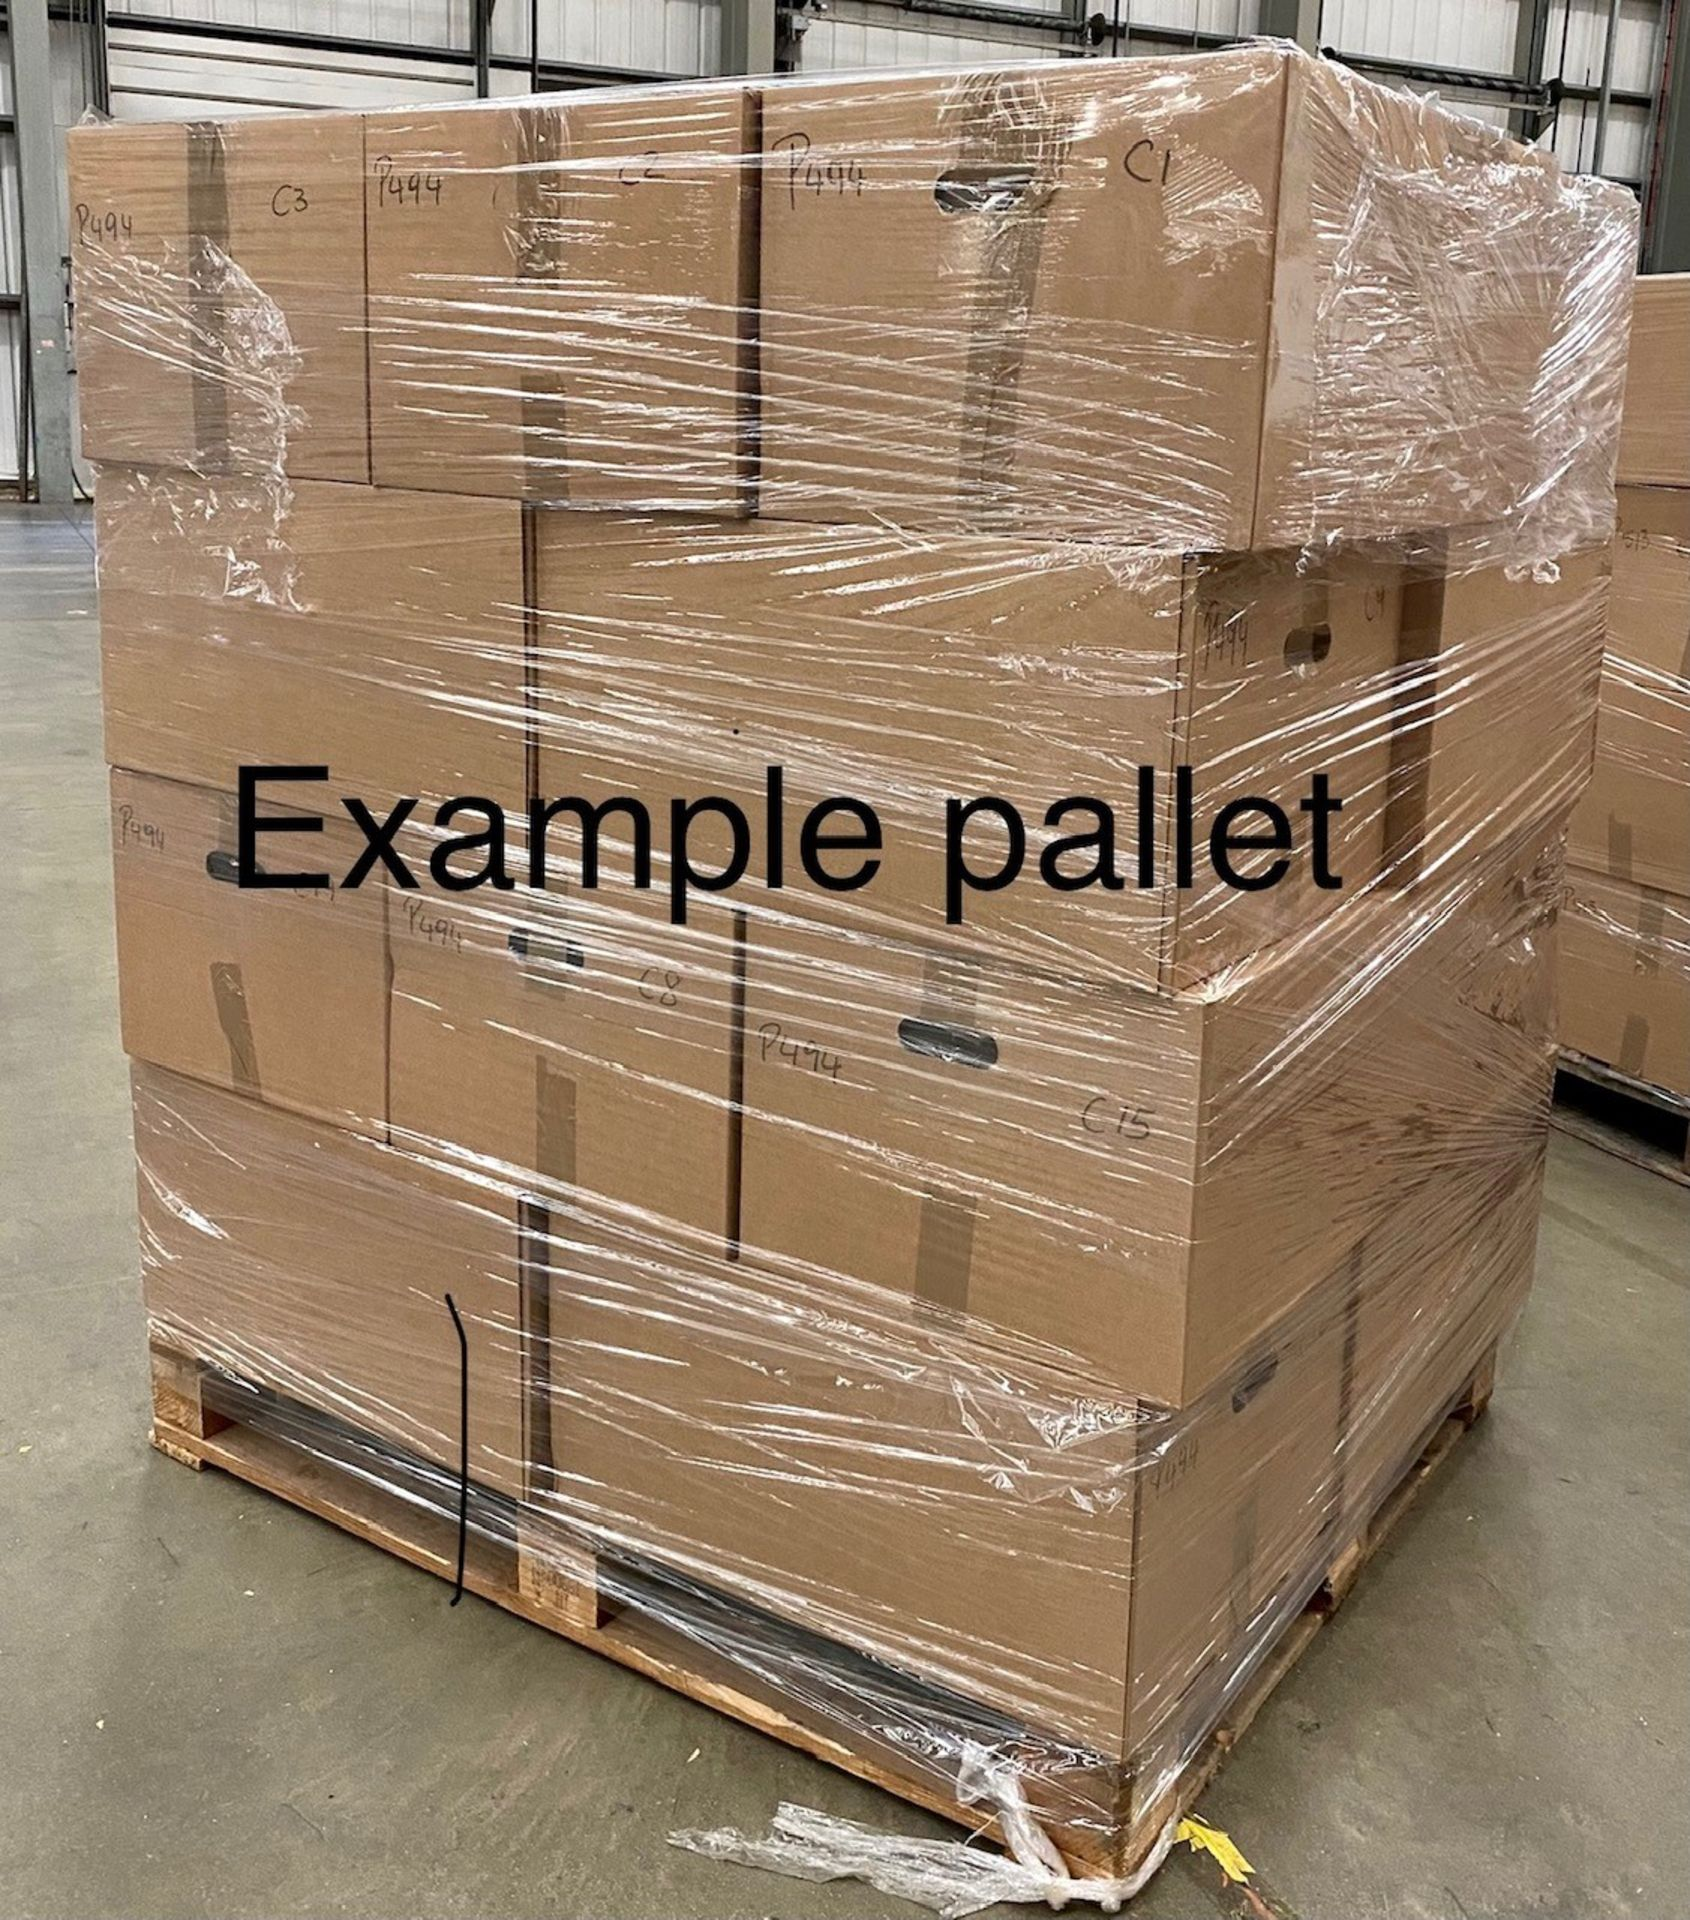 1 x mixed pallet = 280 items of Grade A M&S Womenswear Clothing. Total RRP £7924.50 - Image 6 of 7